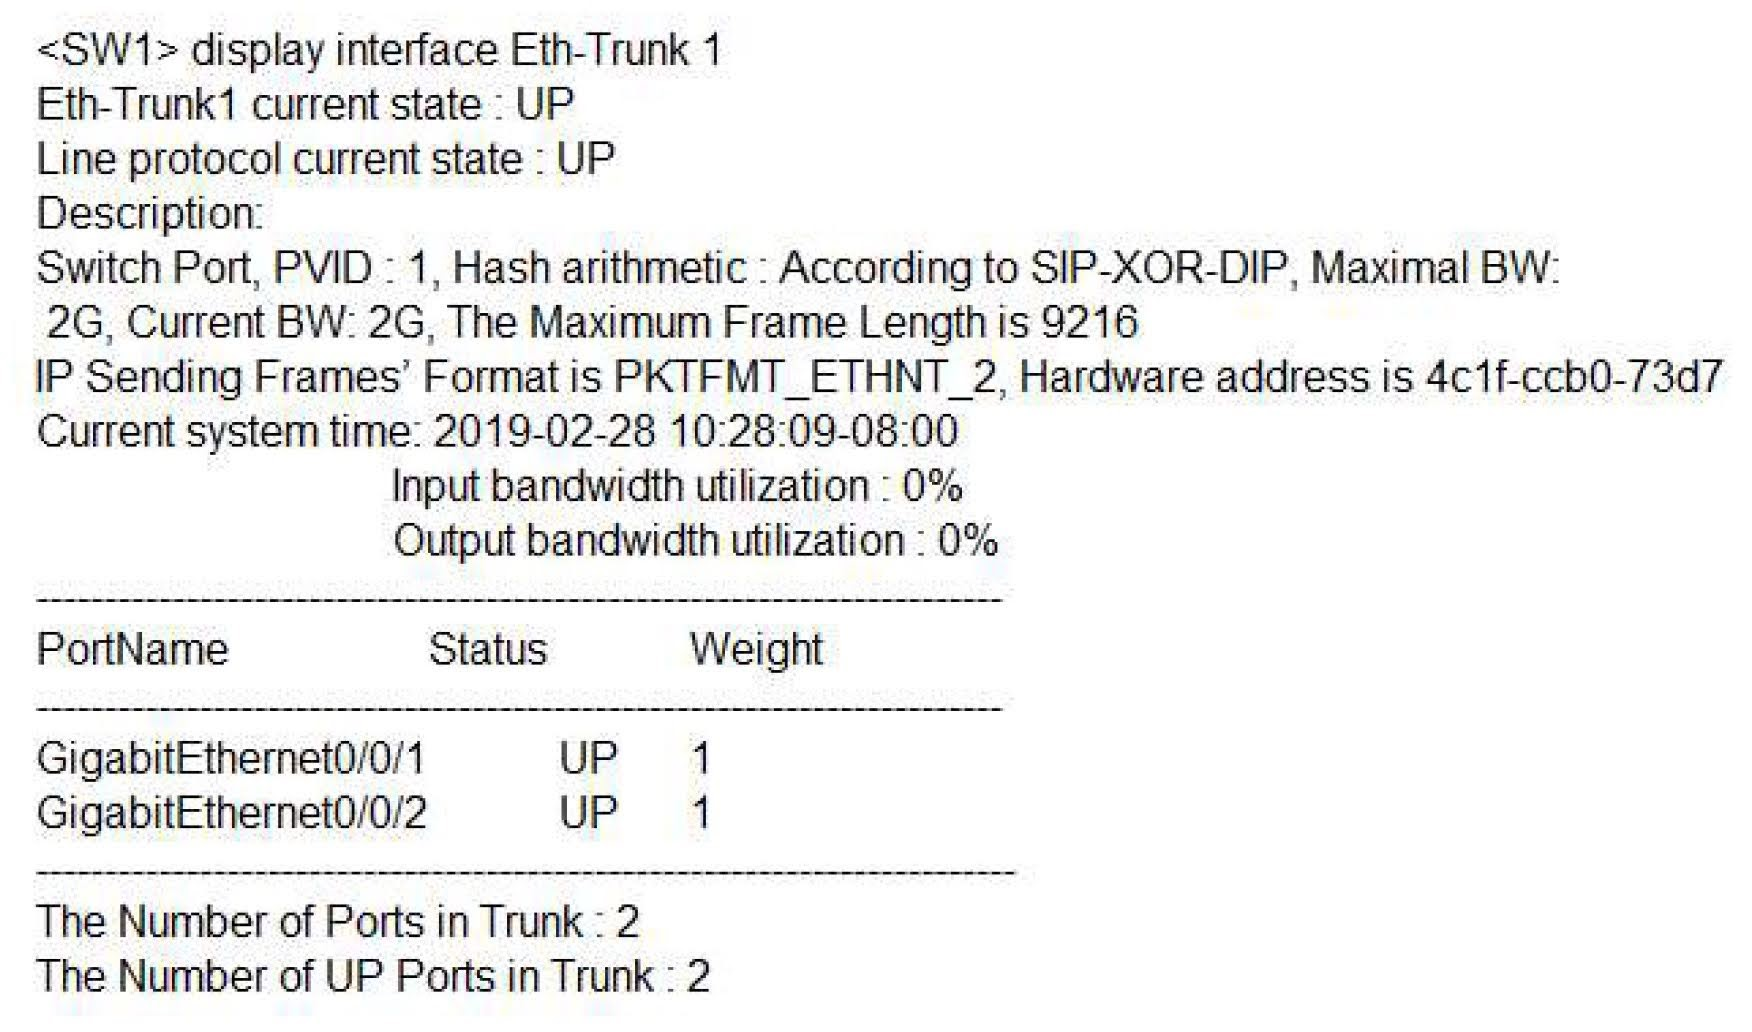 The following shows the Eth-Trunk information on a switch.